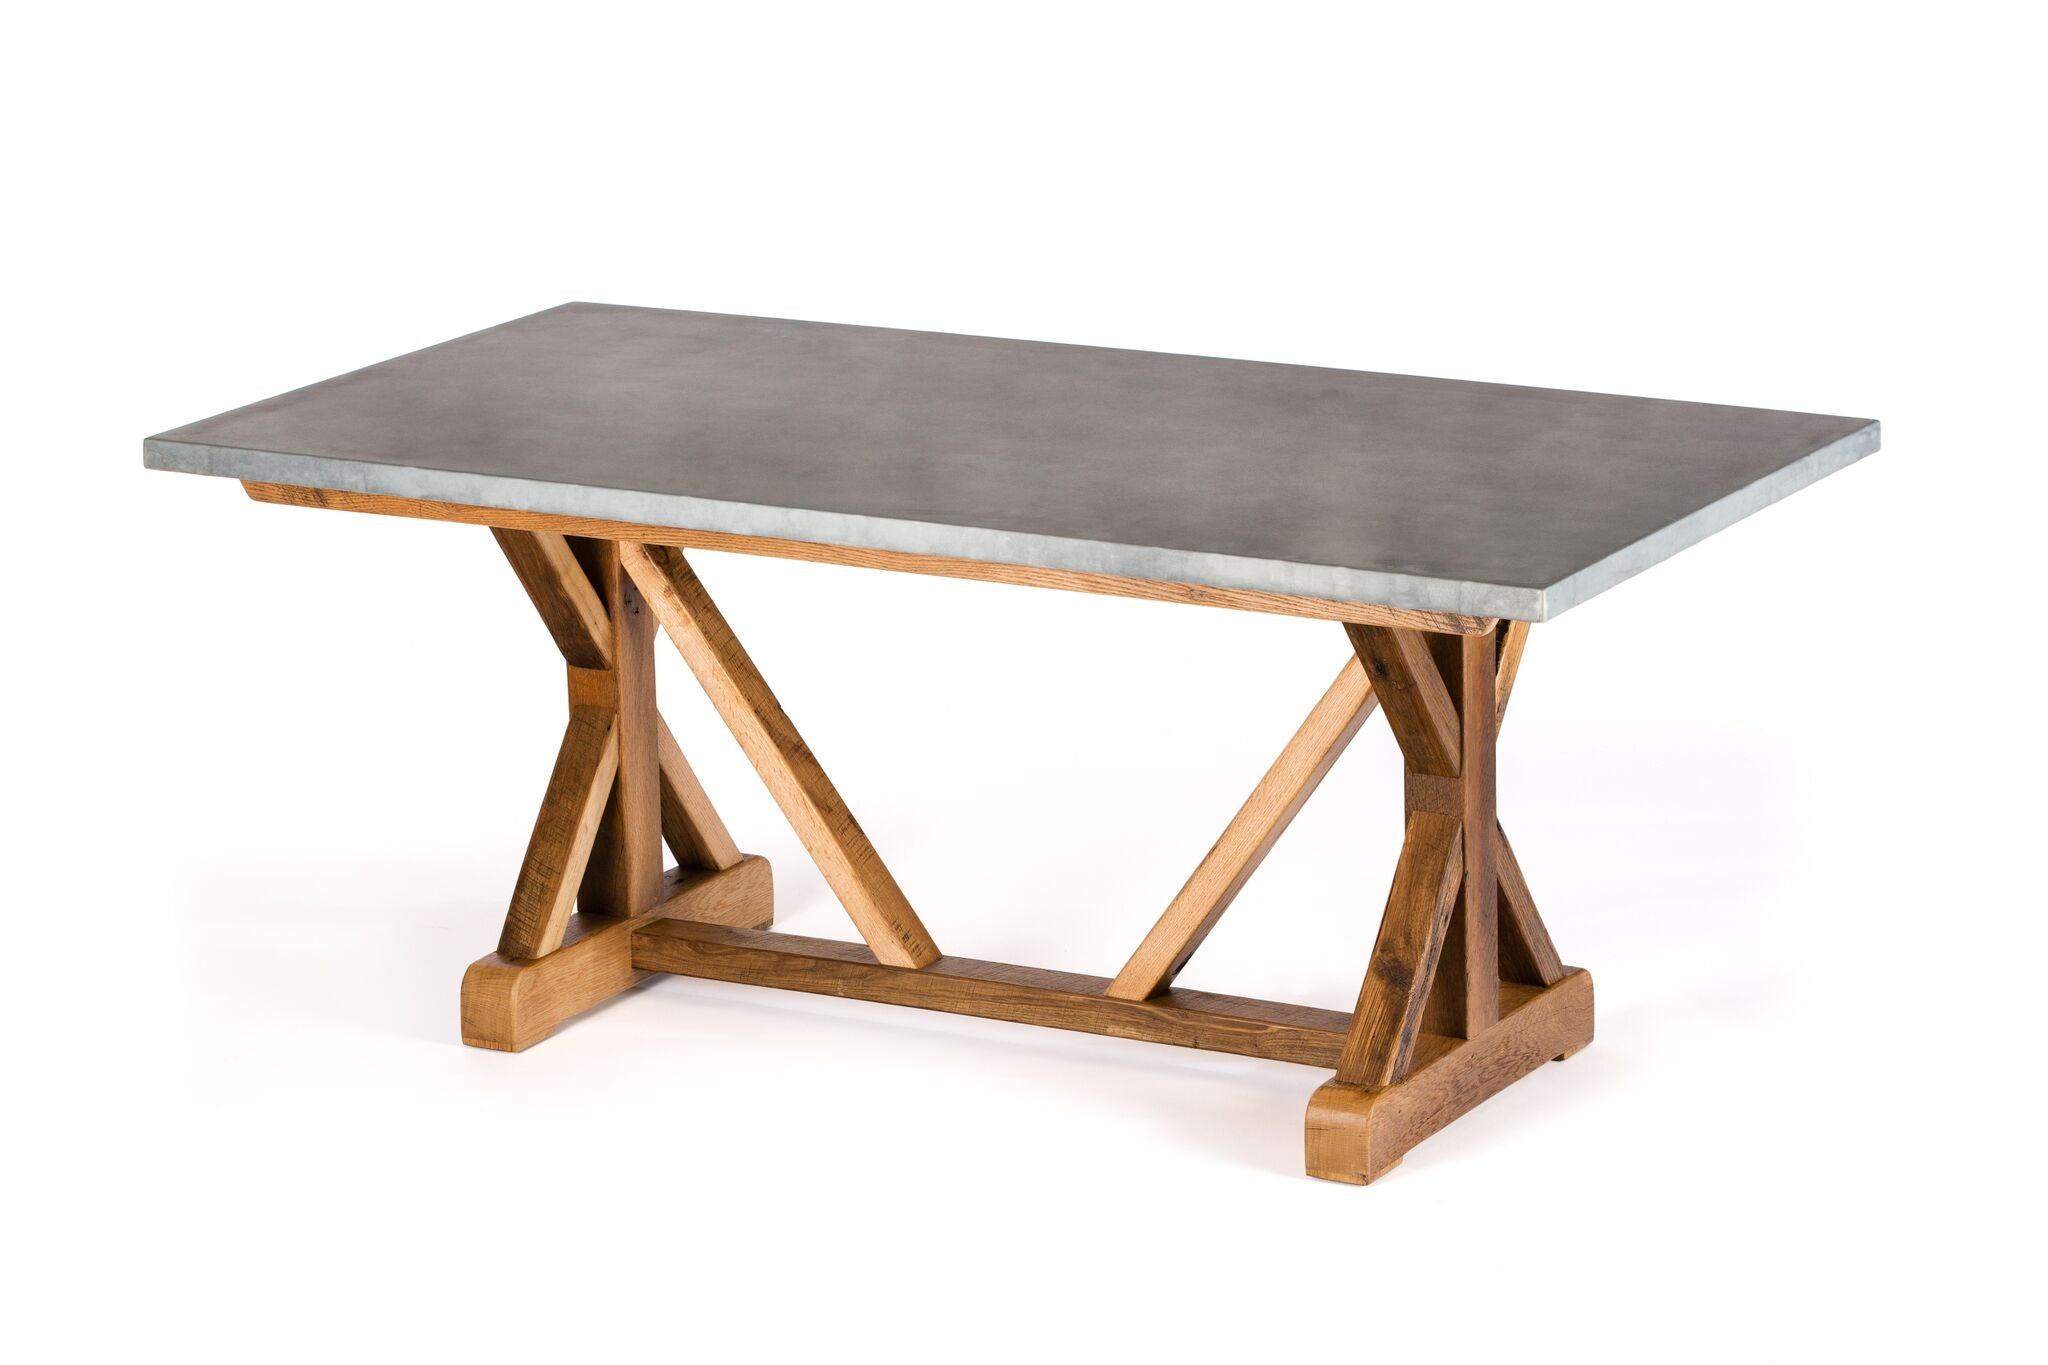 "Zinc Rectangular Table | French Trestle Table | CLASSIC | Weathered Grey on Reclaimed Oak | 60""L 37""W 30""H 